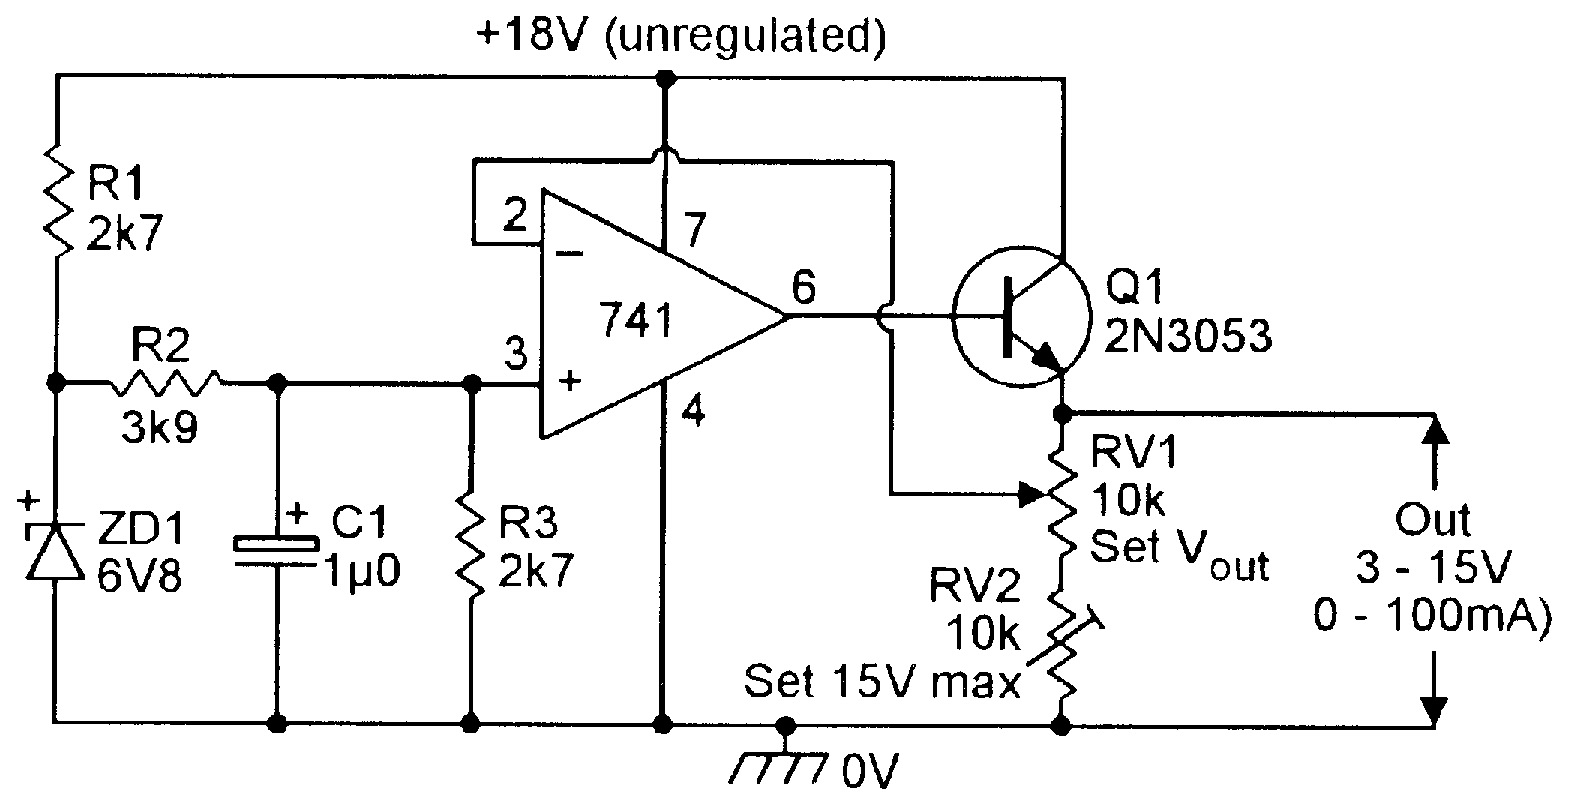 Op Amp Cookbook Part 4 Nuts Volts Magazine Alternate Positivevoltage Switching Regulator Circuit Diagram Figure 20 3v To 15v 0 100 Ma Stabilized Psu